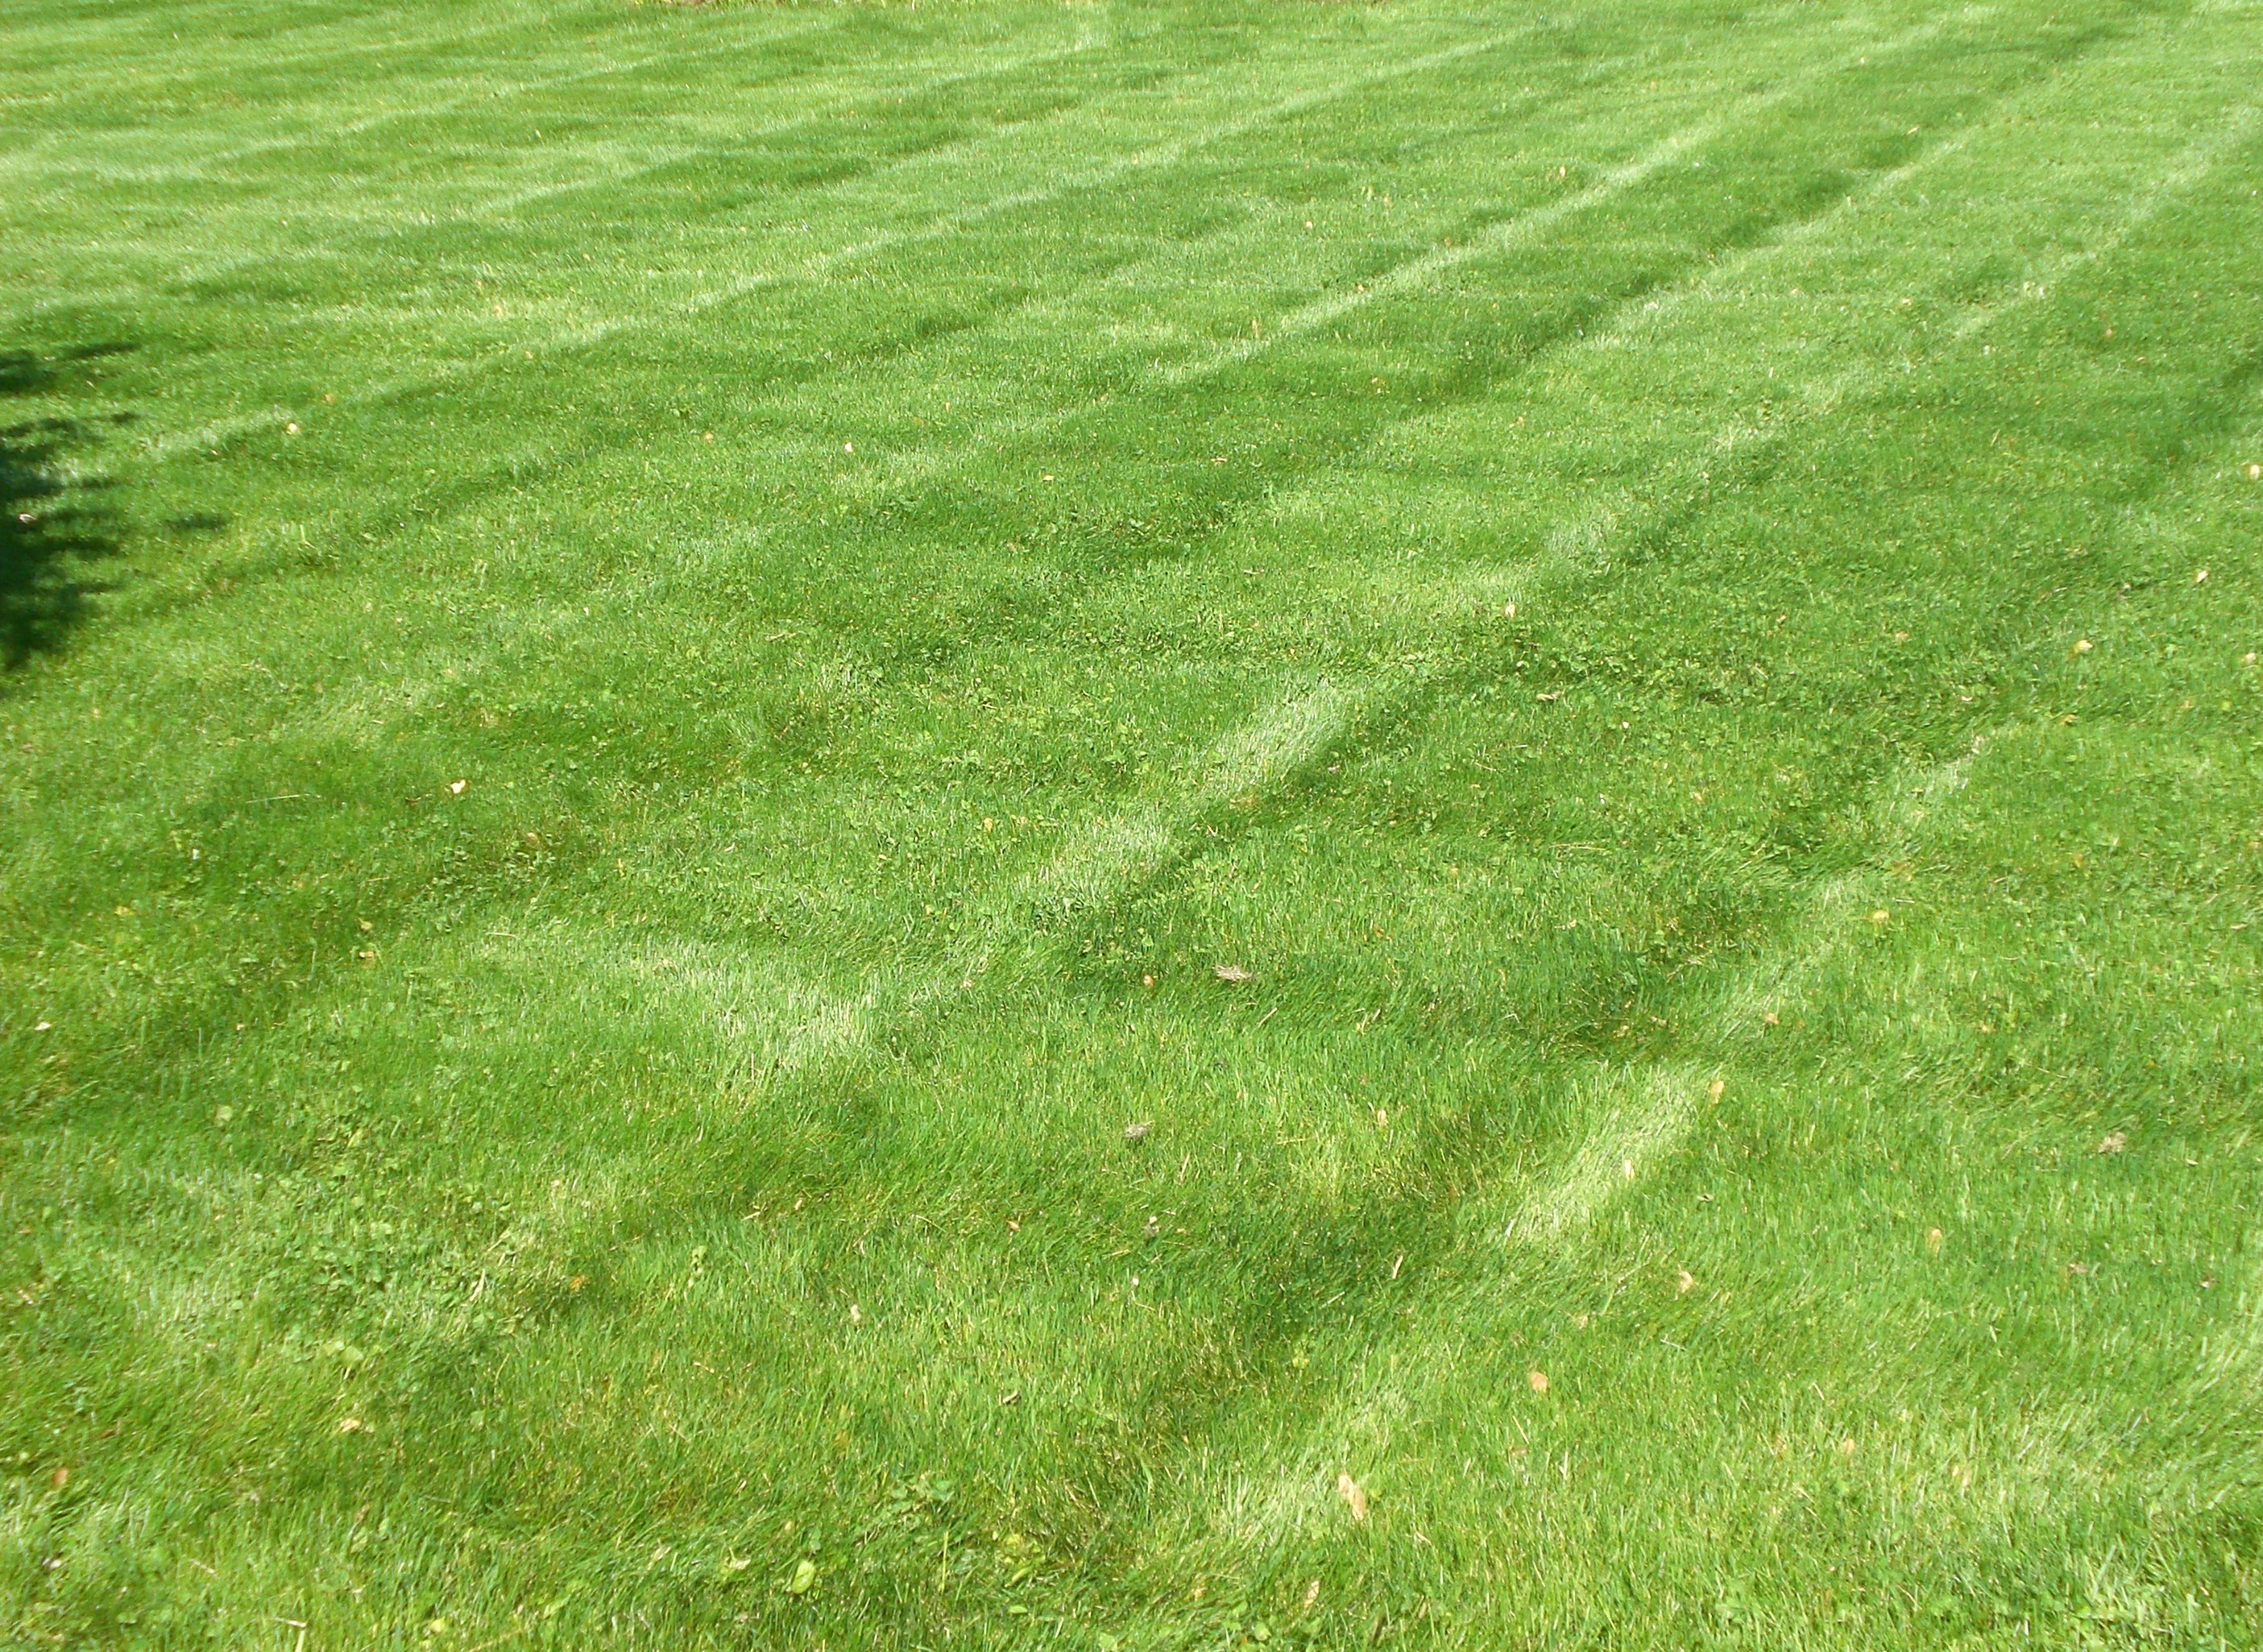 Lawn Wallpapers High Quality Download Free